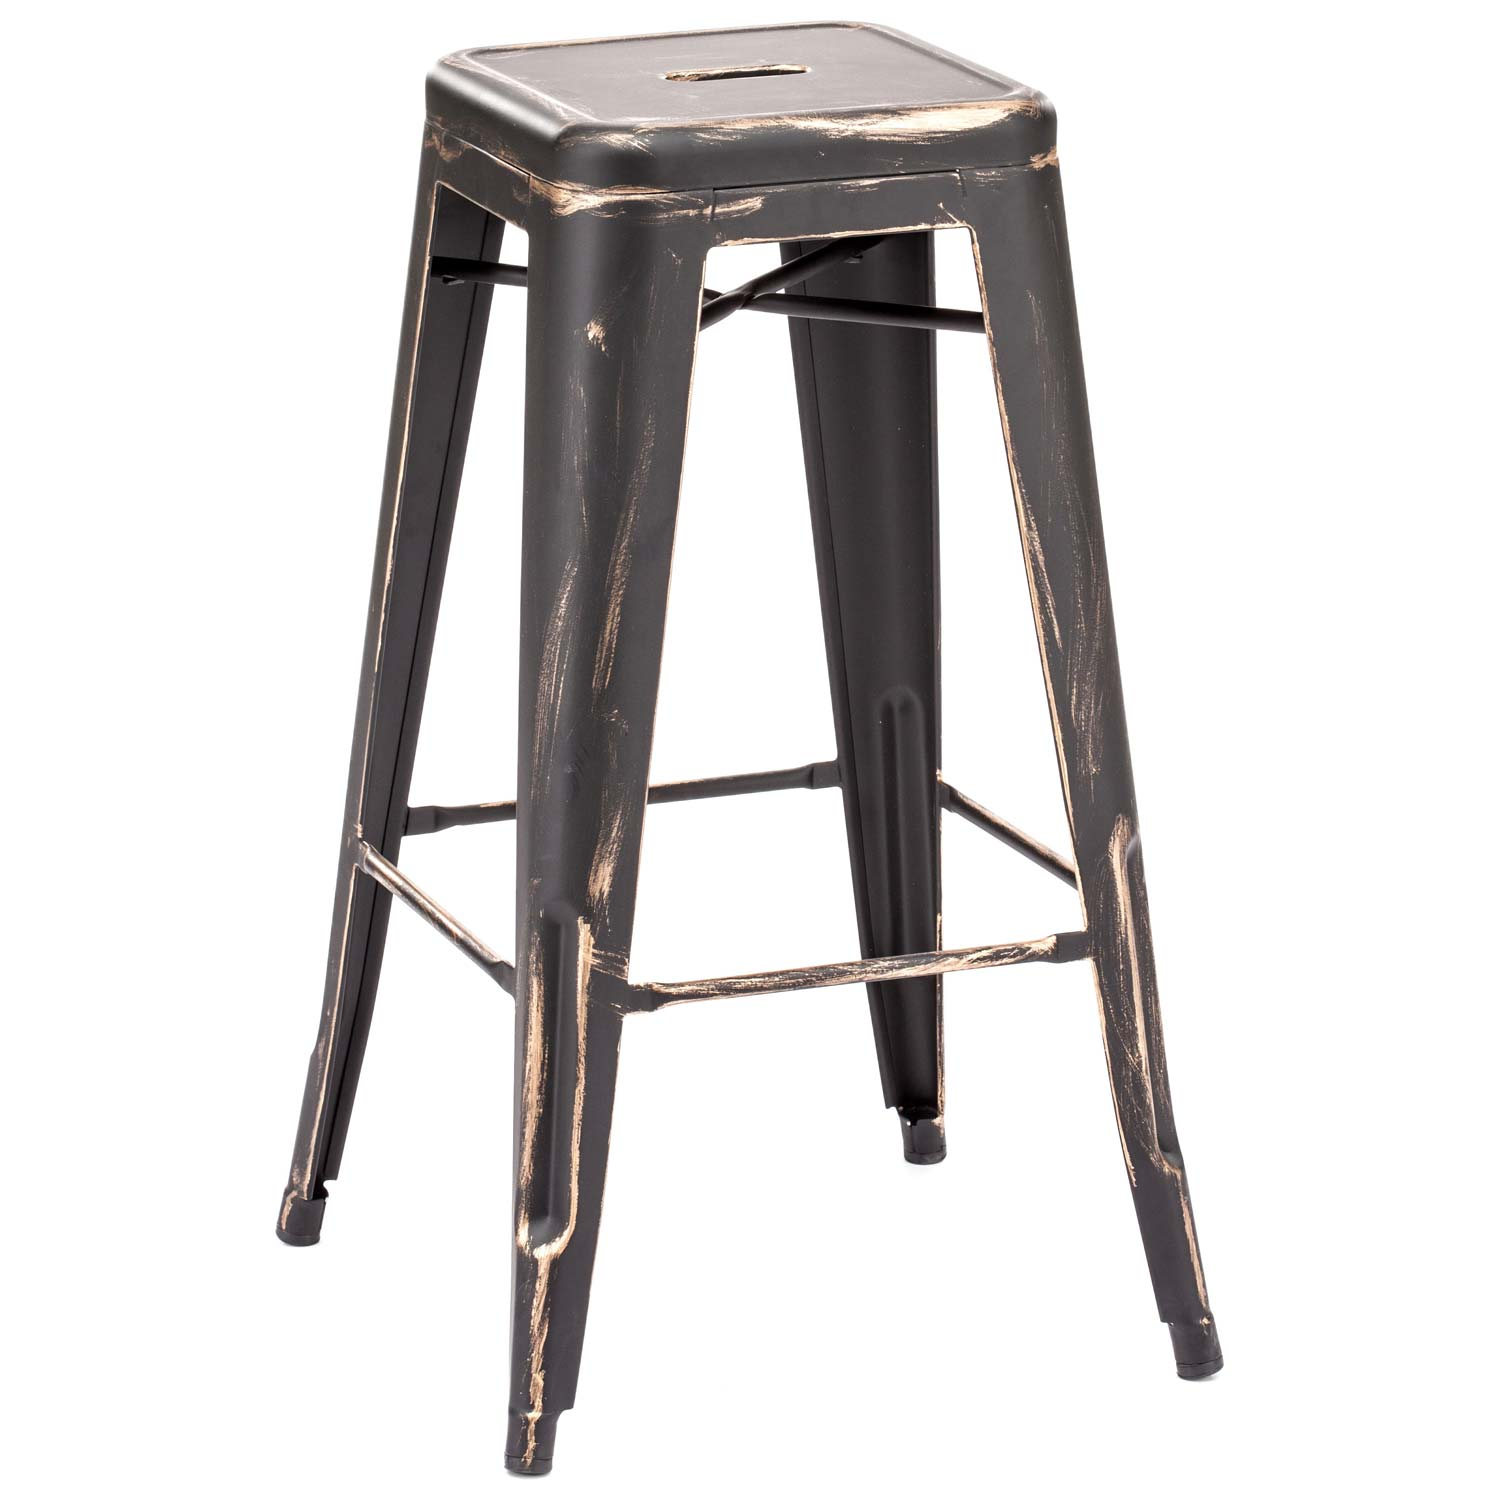 "Marius 29"" Backless Bar Chair - Steel, Antique Black Gold - ZM-106108"